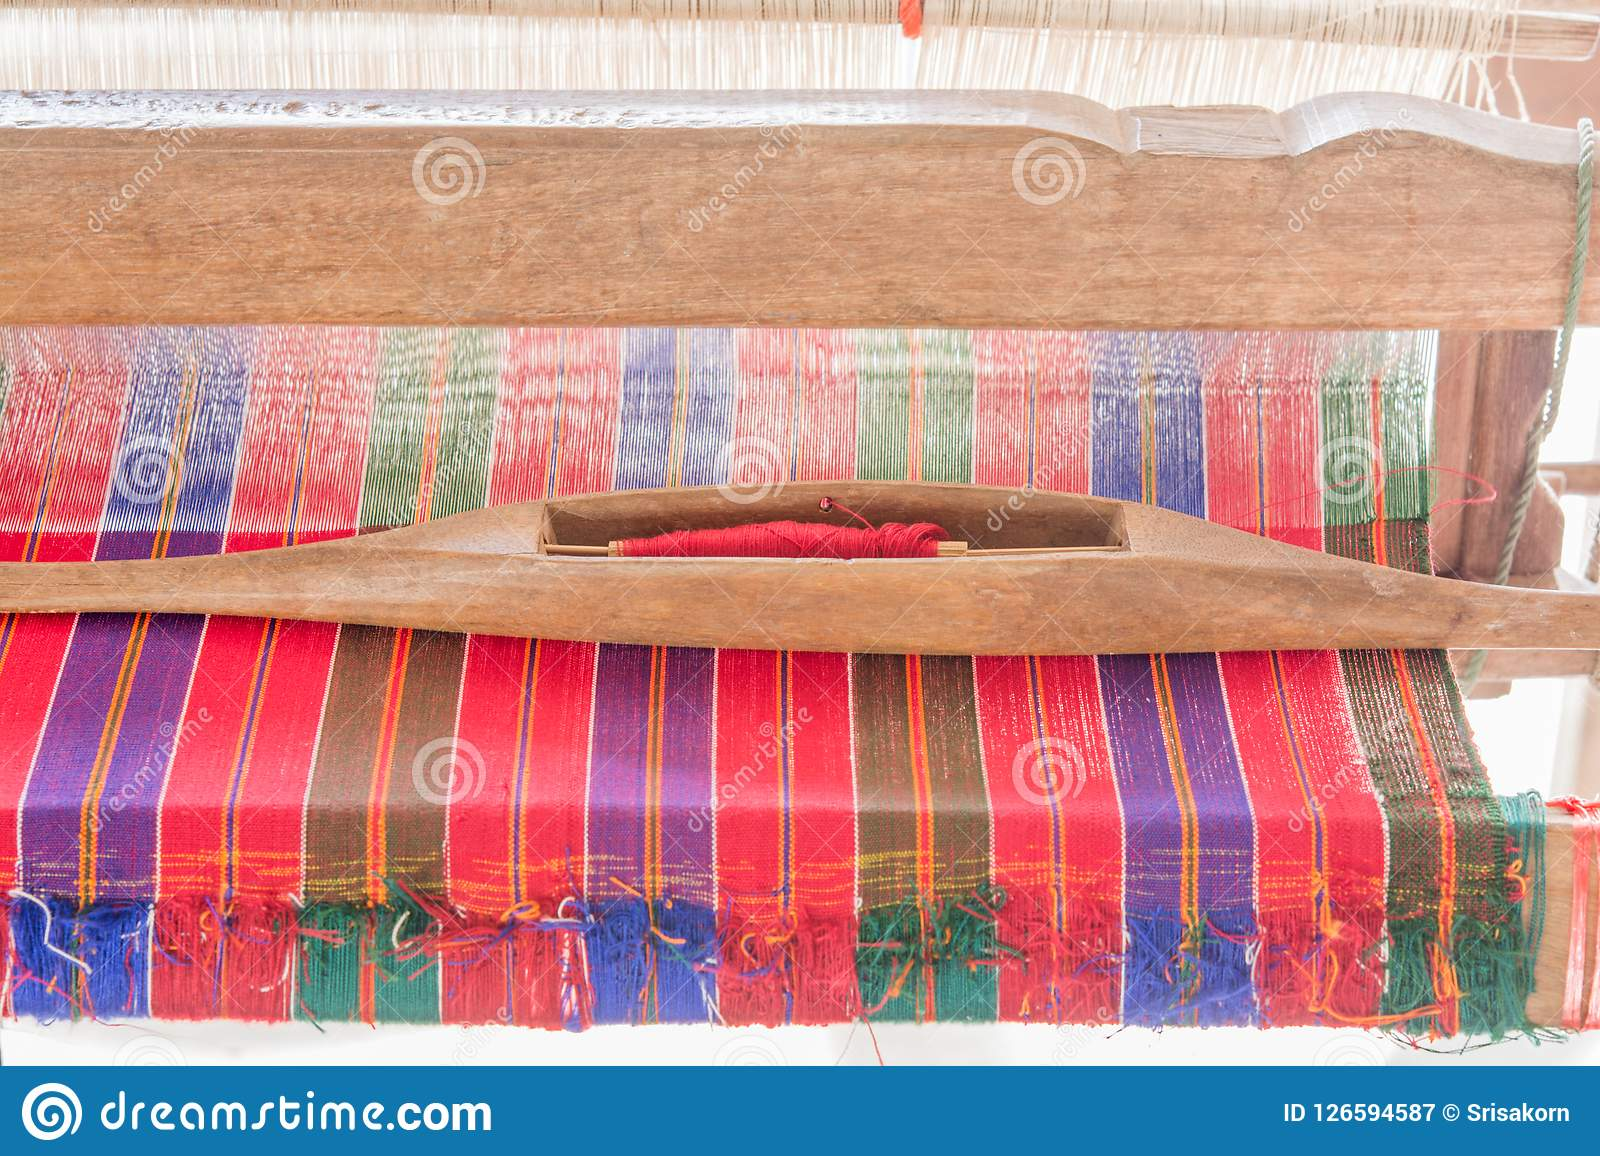 Yarn and weaving, hand-woven, crafts